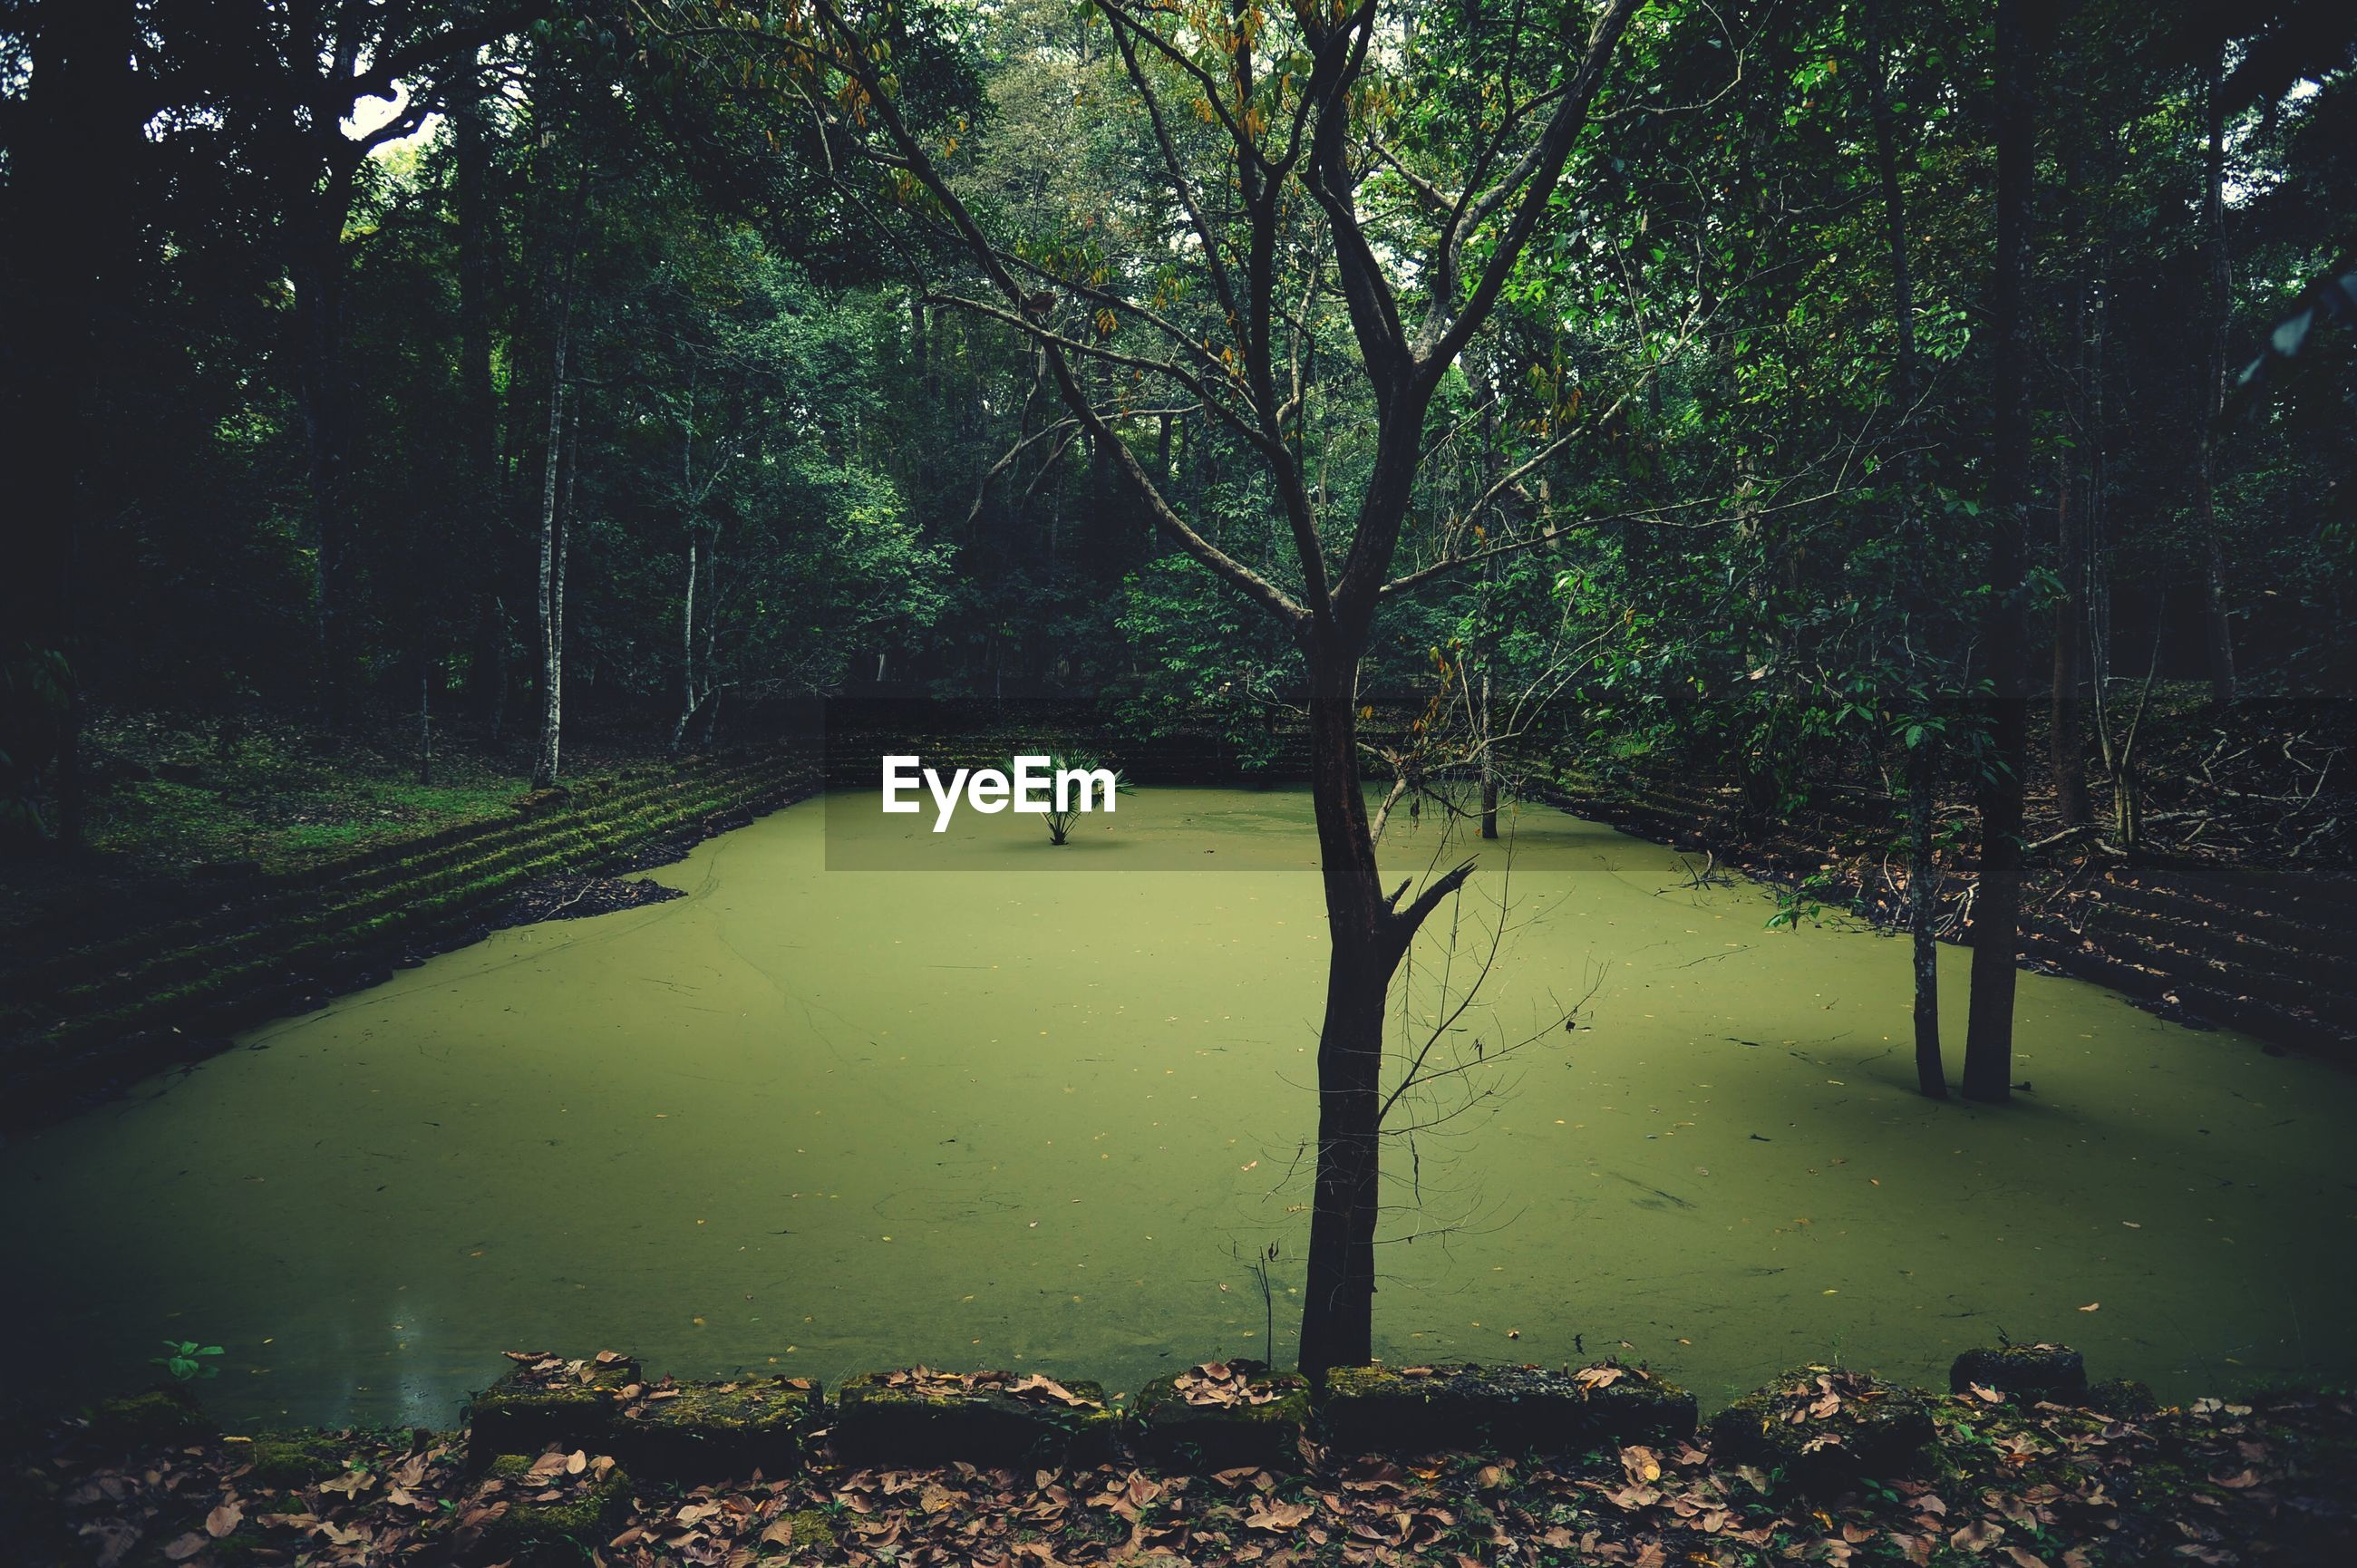 Dirty pond amidst trees